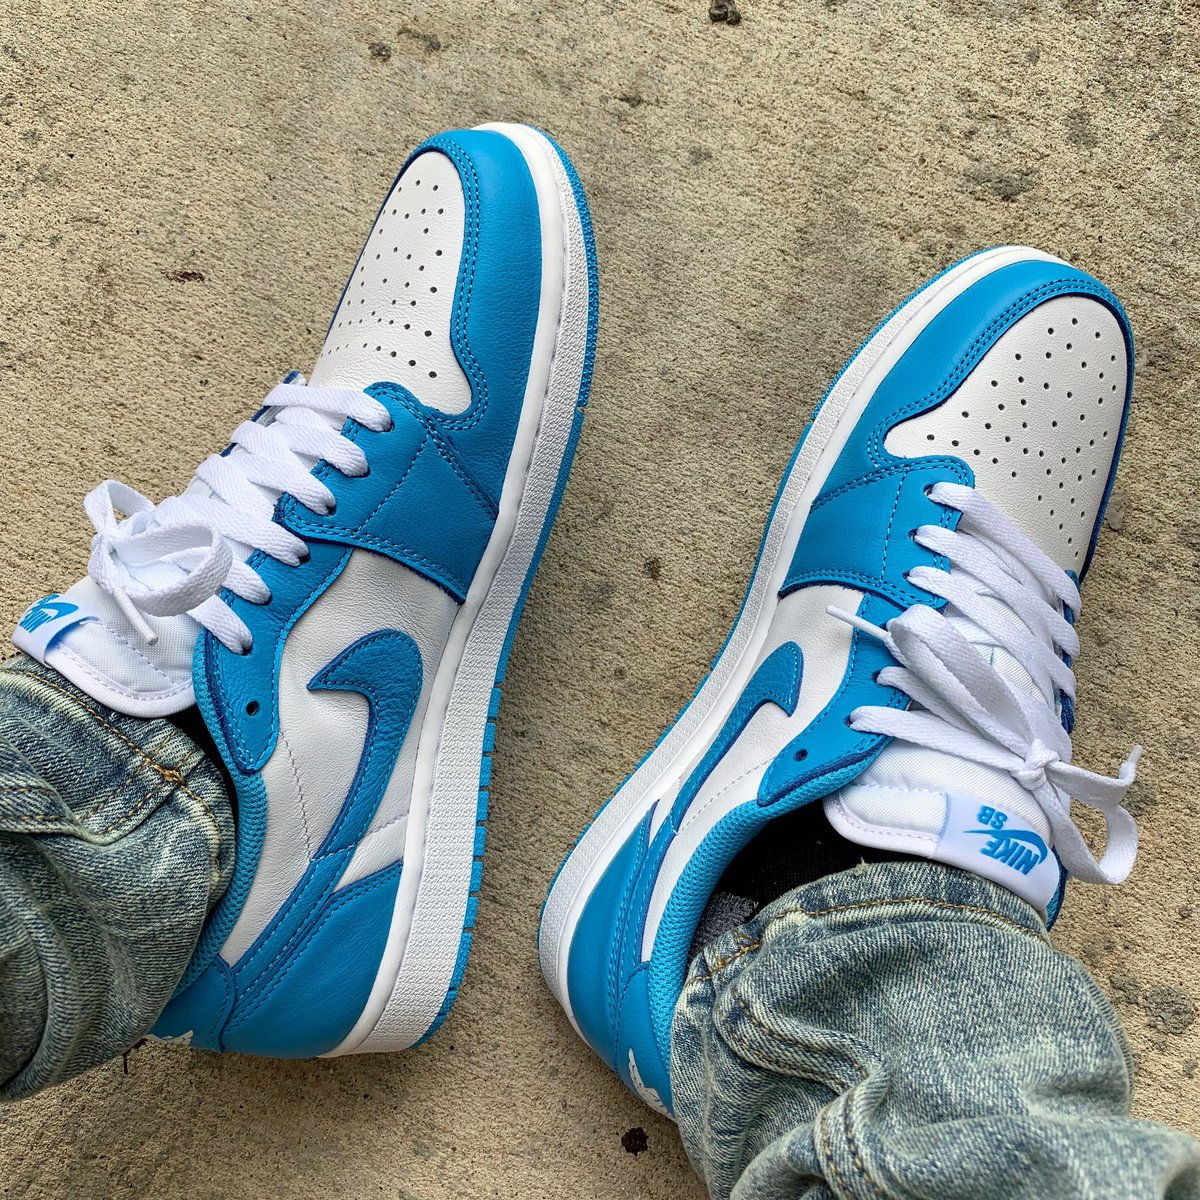 Thoughts on Jordan 1 lows?<br>http://pic.twitter.com/r2W0aLRaaO